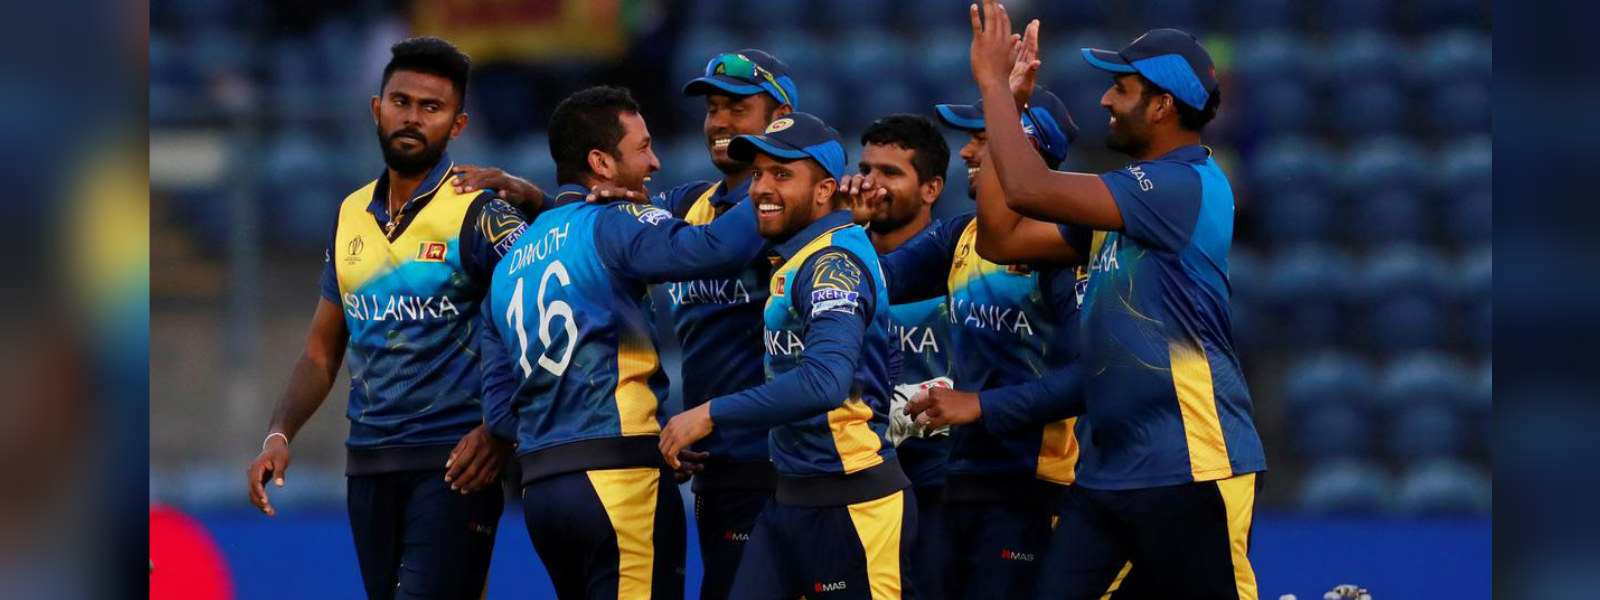 Oshada Fernando, Wanindu Hasaranga the stars as Sri Lanka whitewash Pakistan